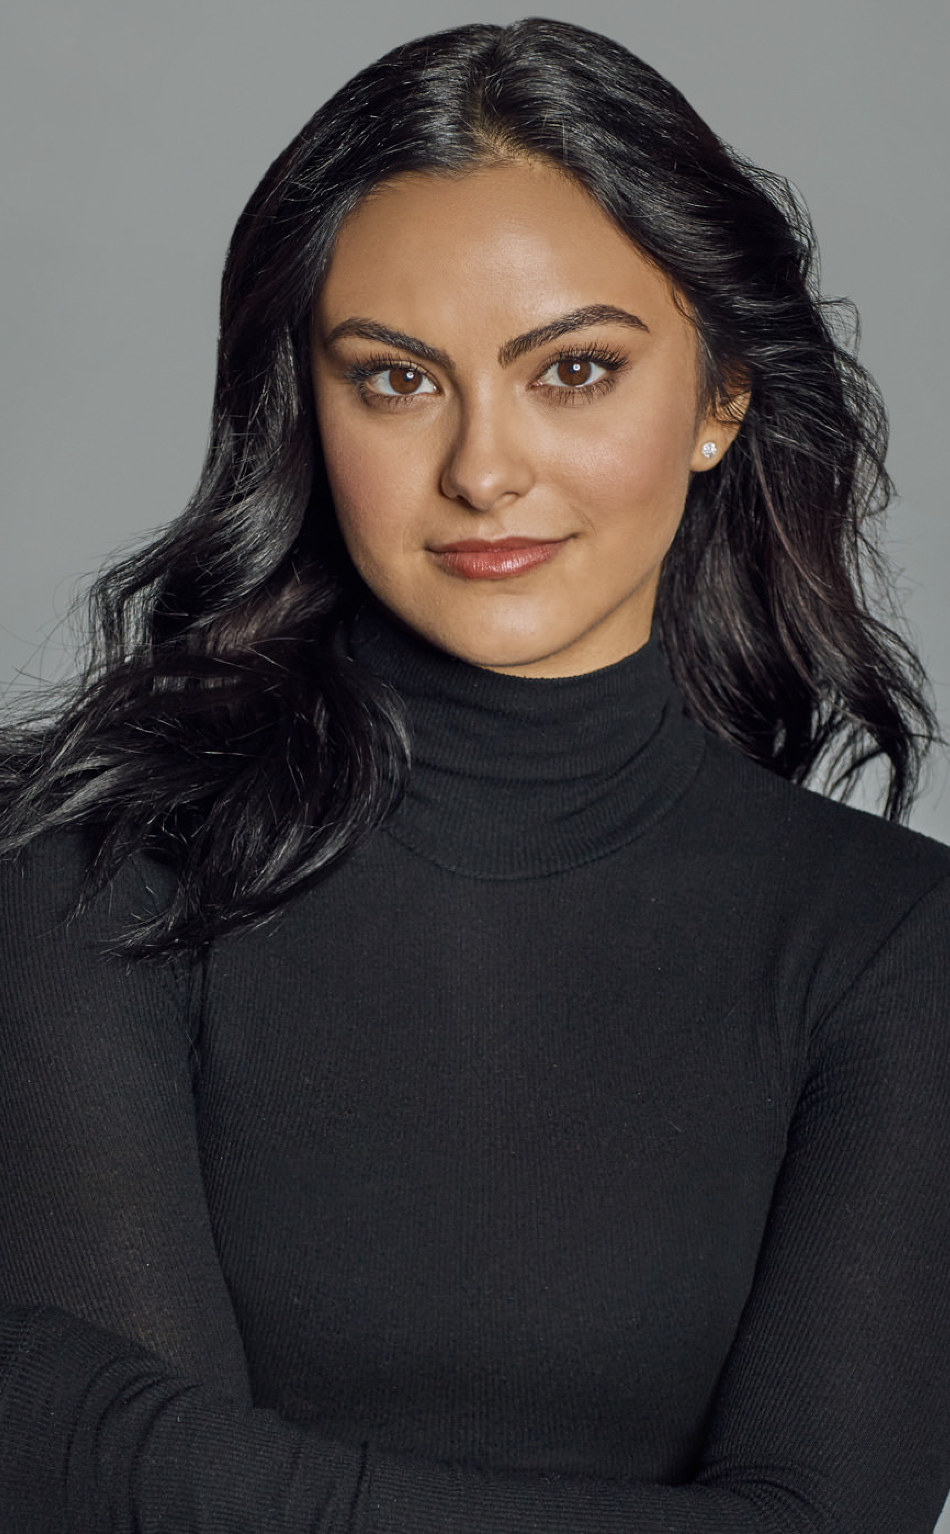 camila mendes harpers bazaar 2018 full hd 2k wallpaper